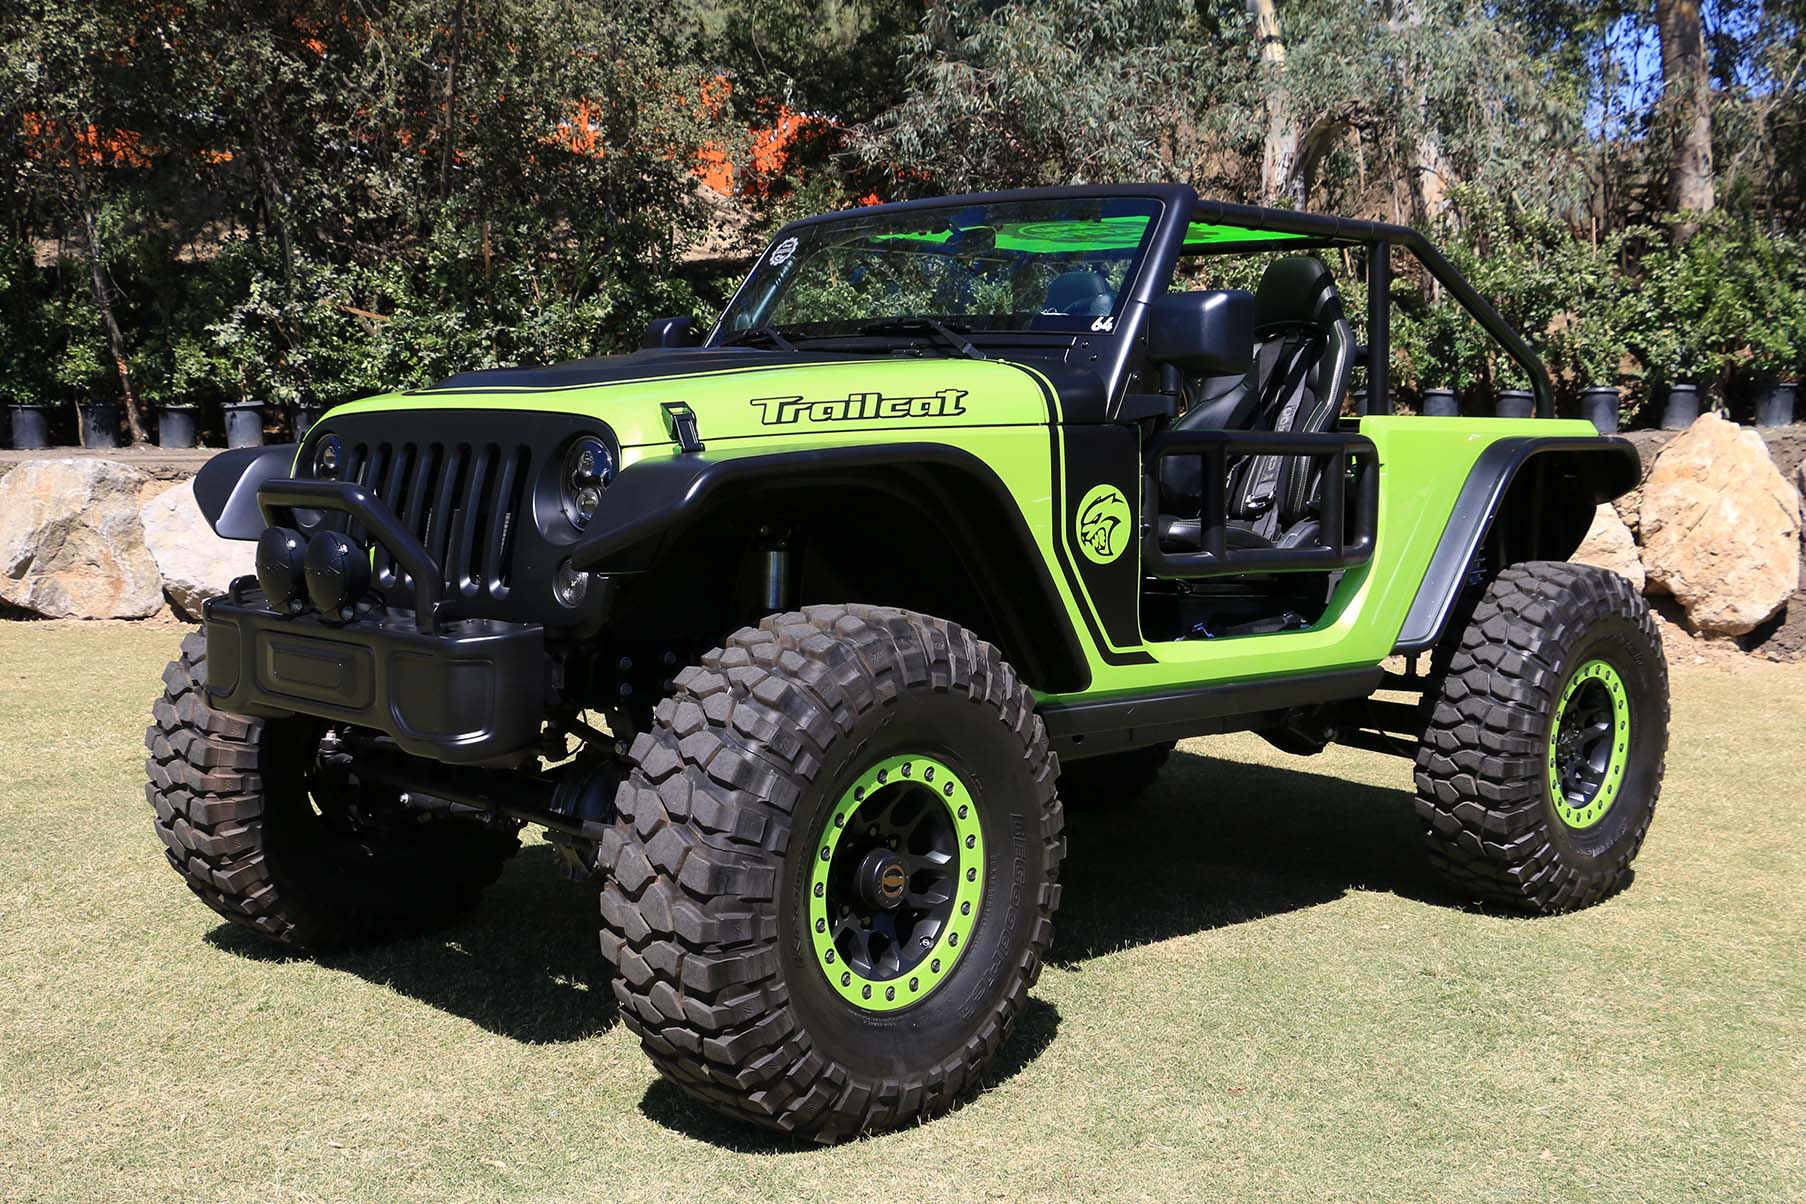 usa southern attached attachment jk forum stolen jkowners images wrangler socal com jeep hardtop california